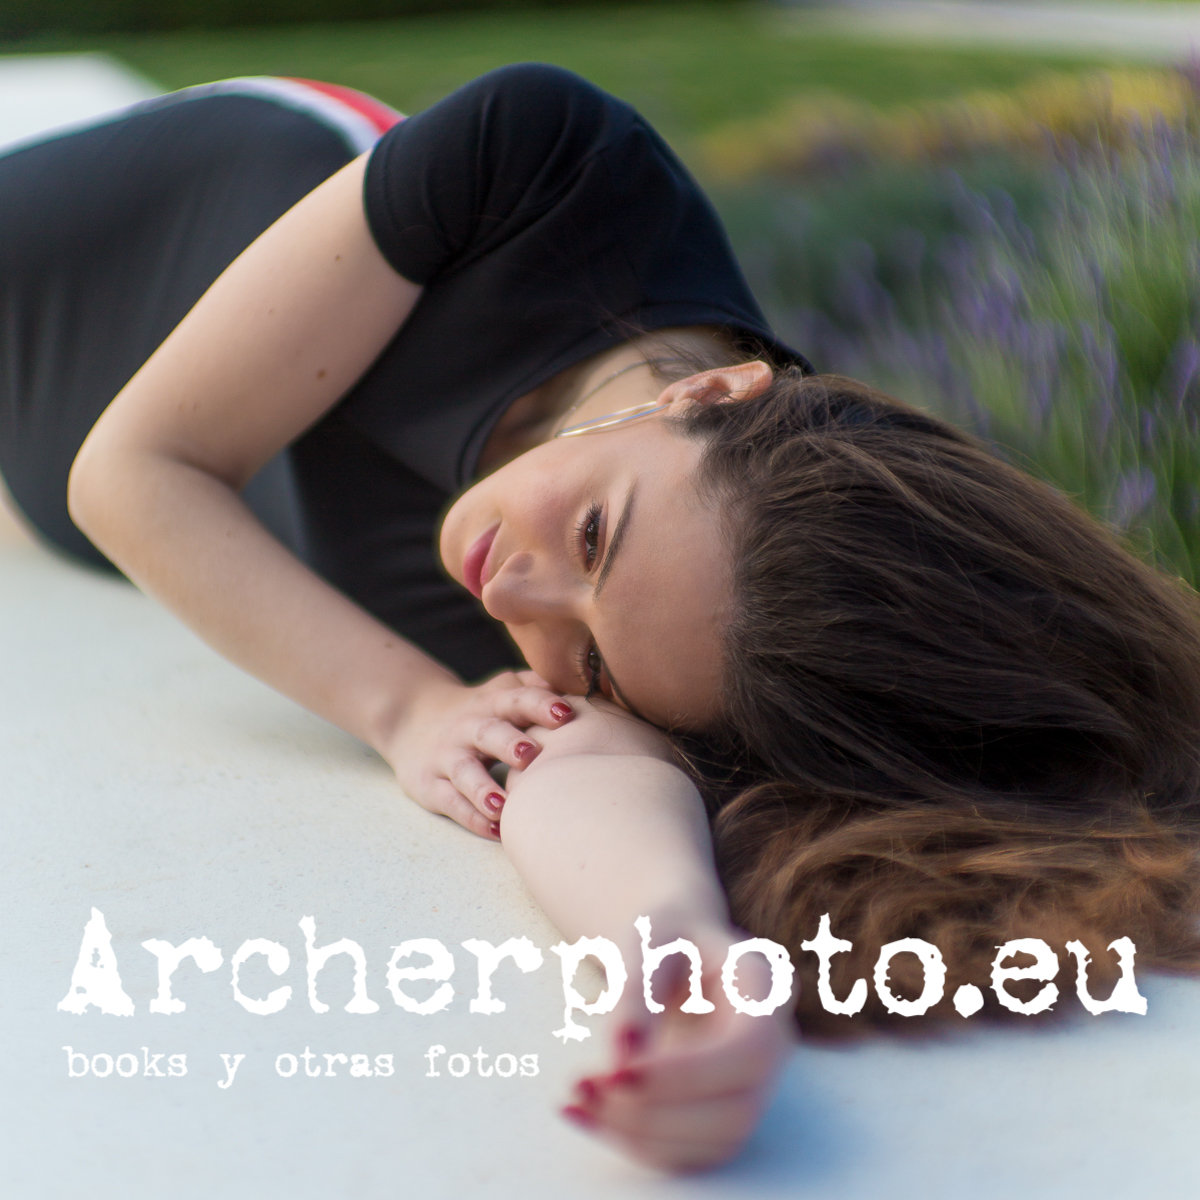 Cintia, April (3), por Archerphoto, fotografia Valencia